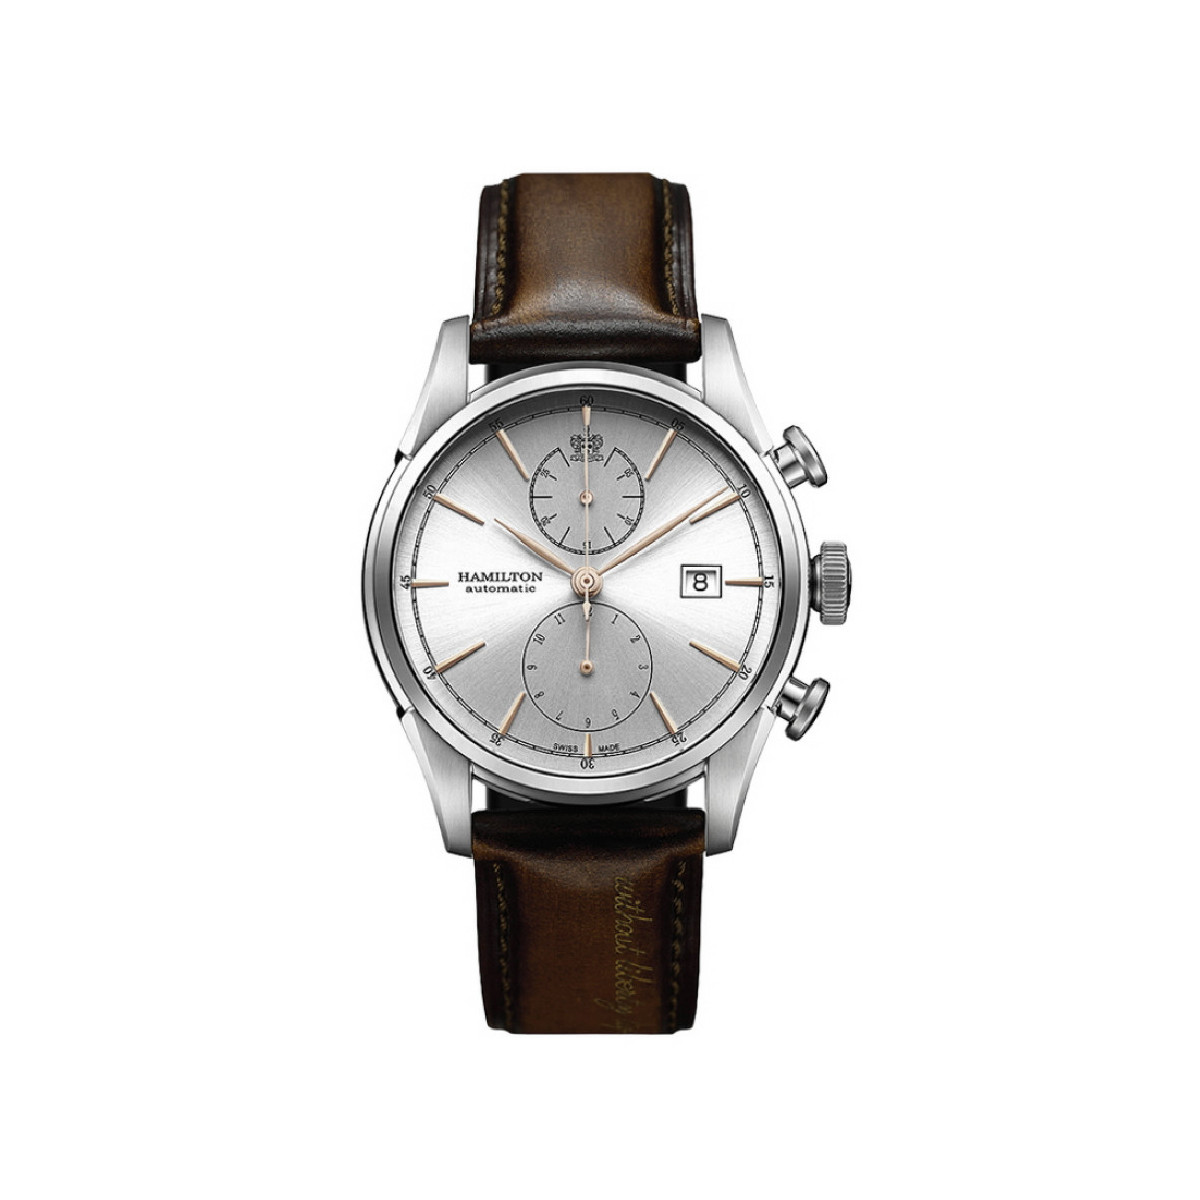 HAMILTON JAZZMASTER SPIRIT OF LIBERTY